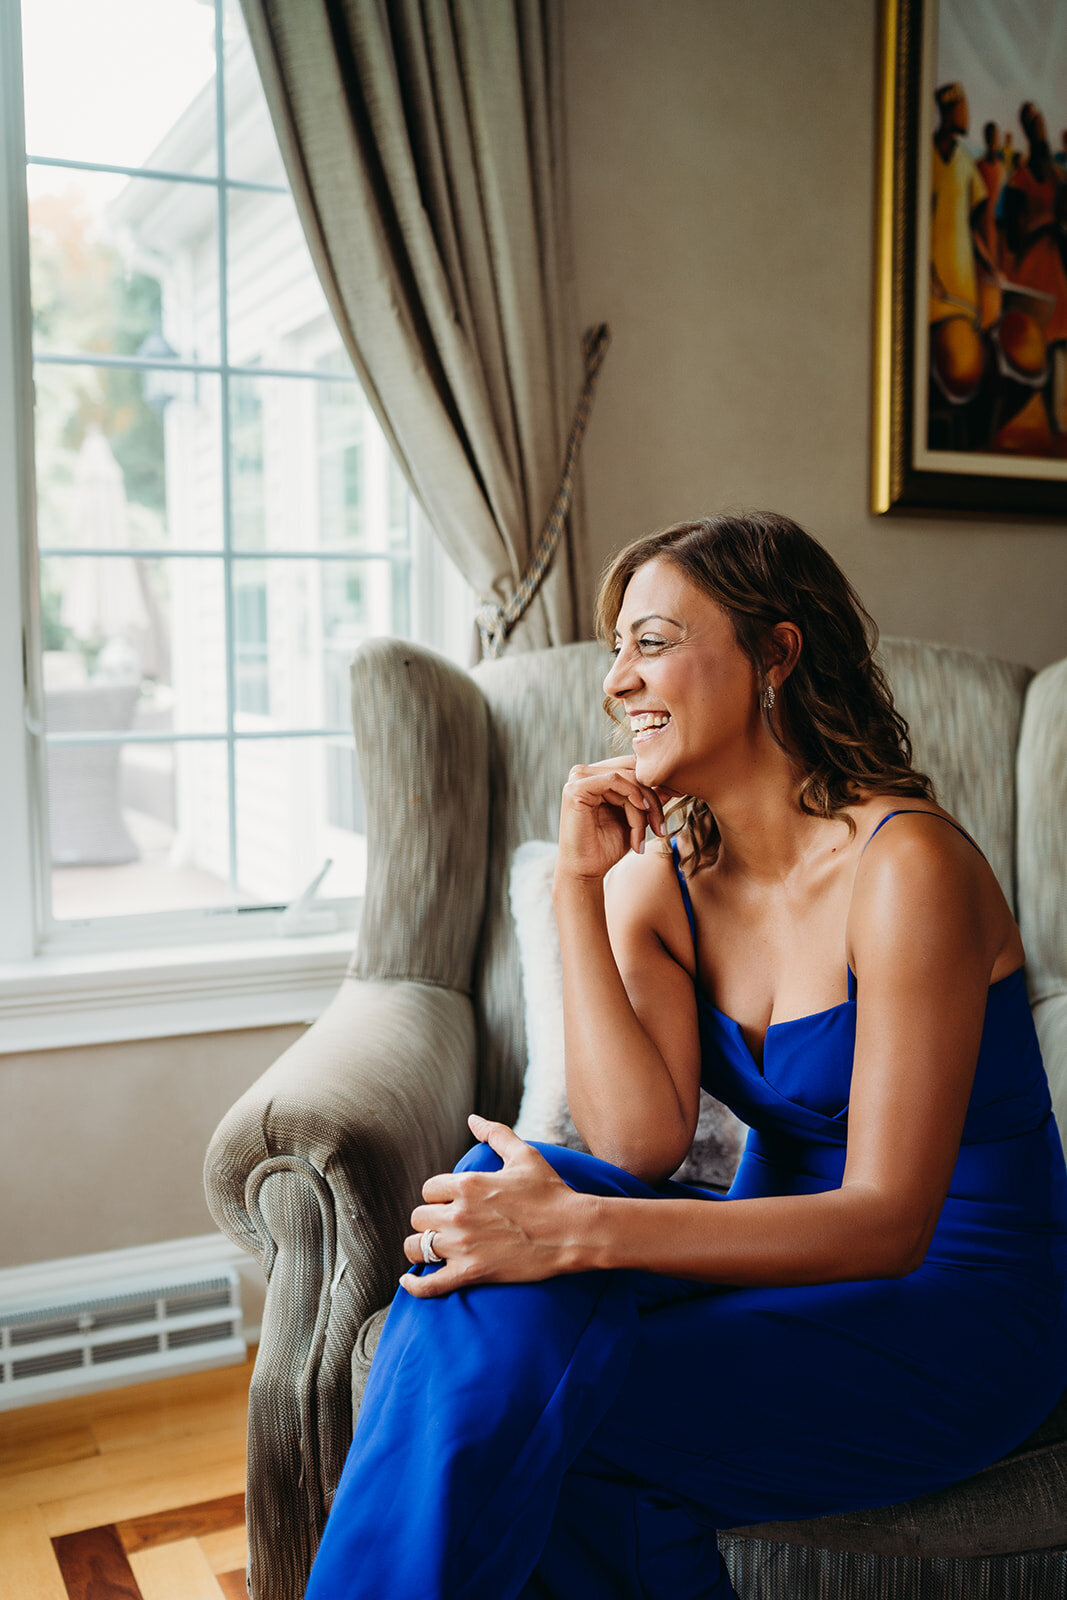 woman in blue jumpsuit looks out window and smiles